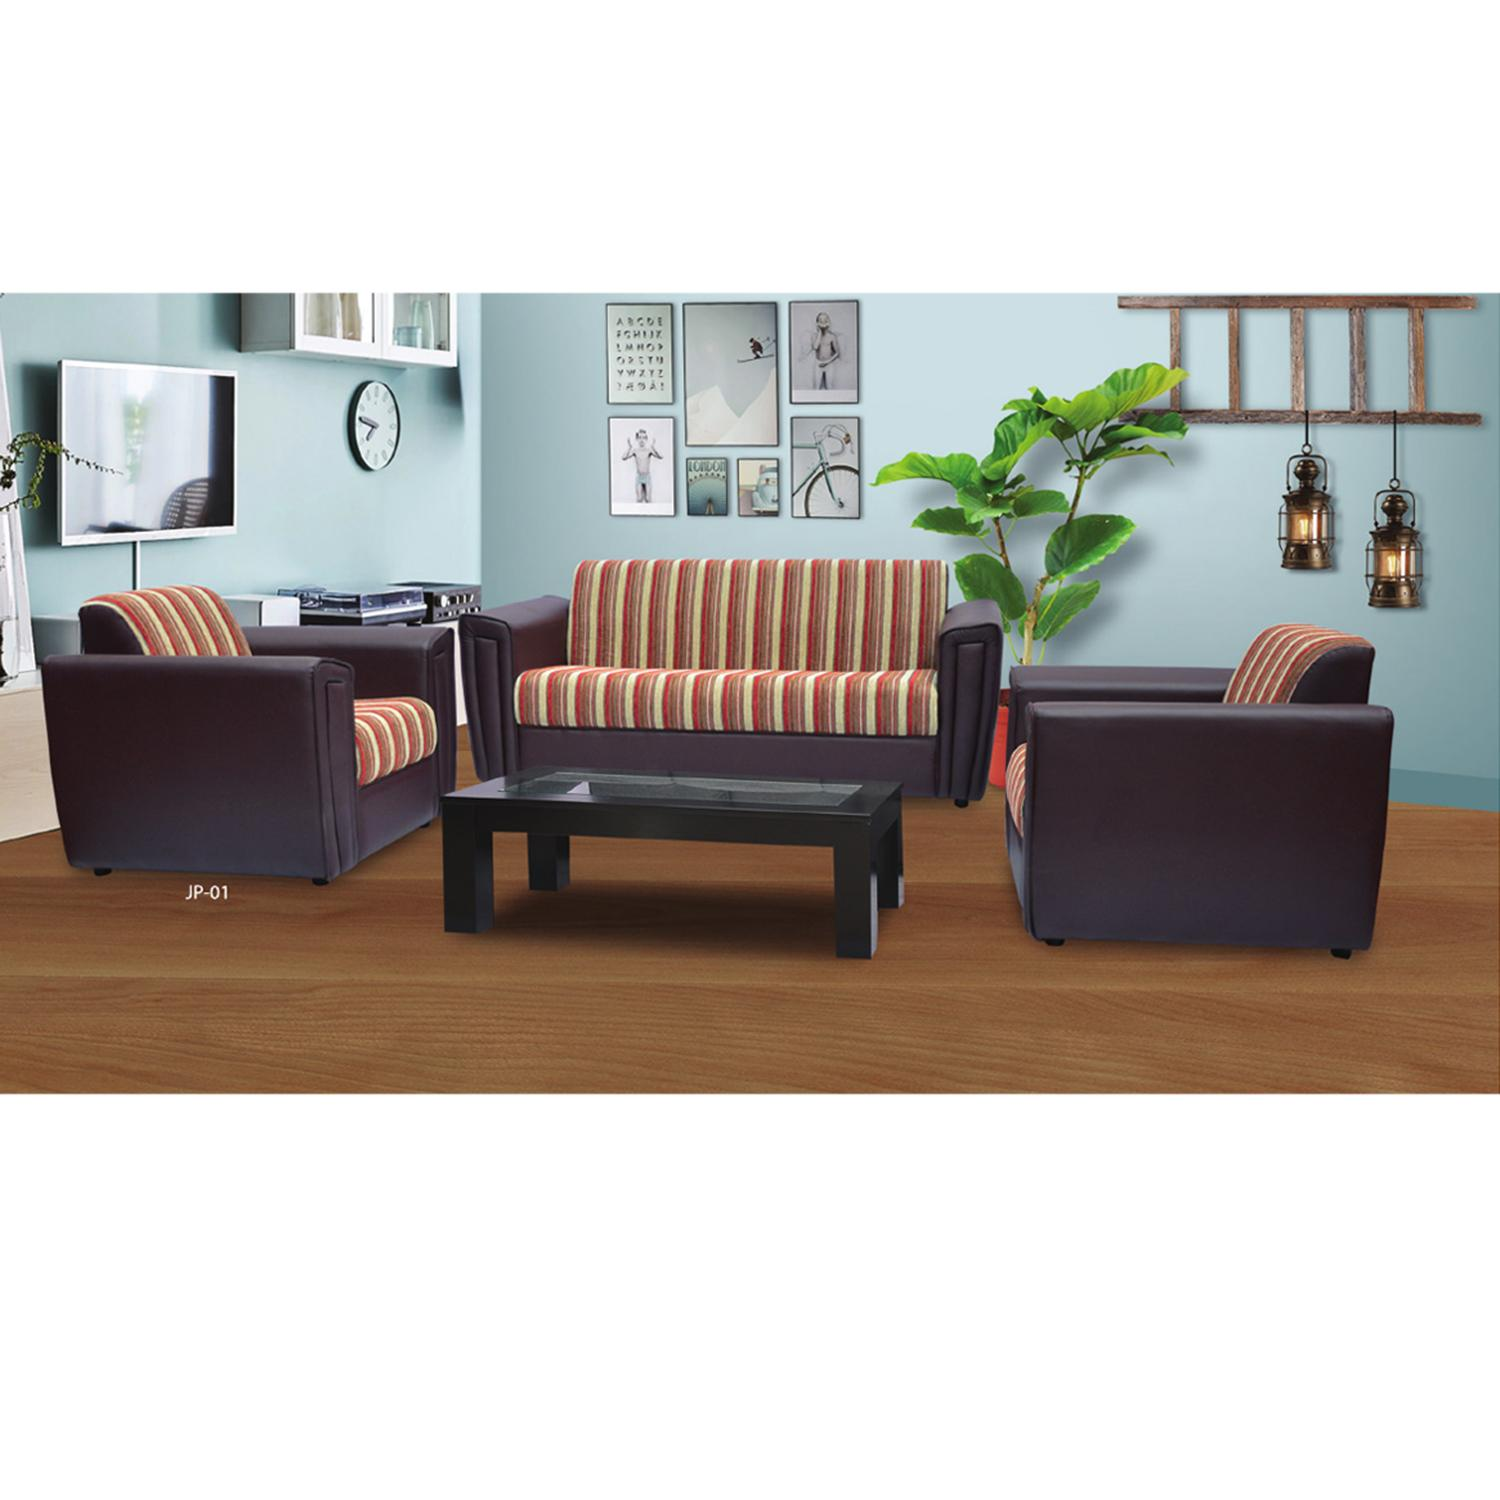 Jupiter Fabric Sofa Set With Rexine - Black